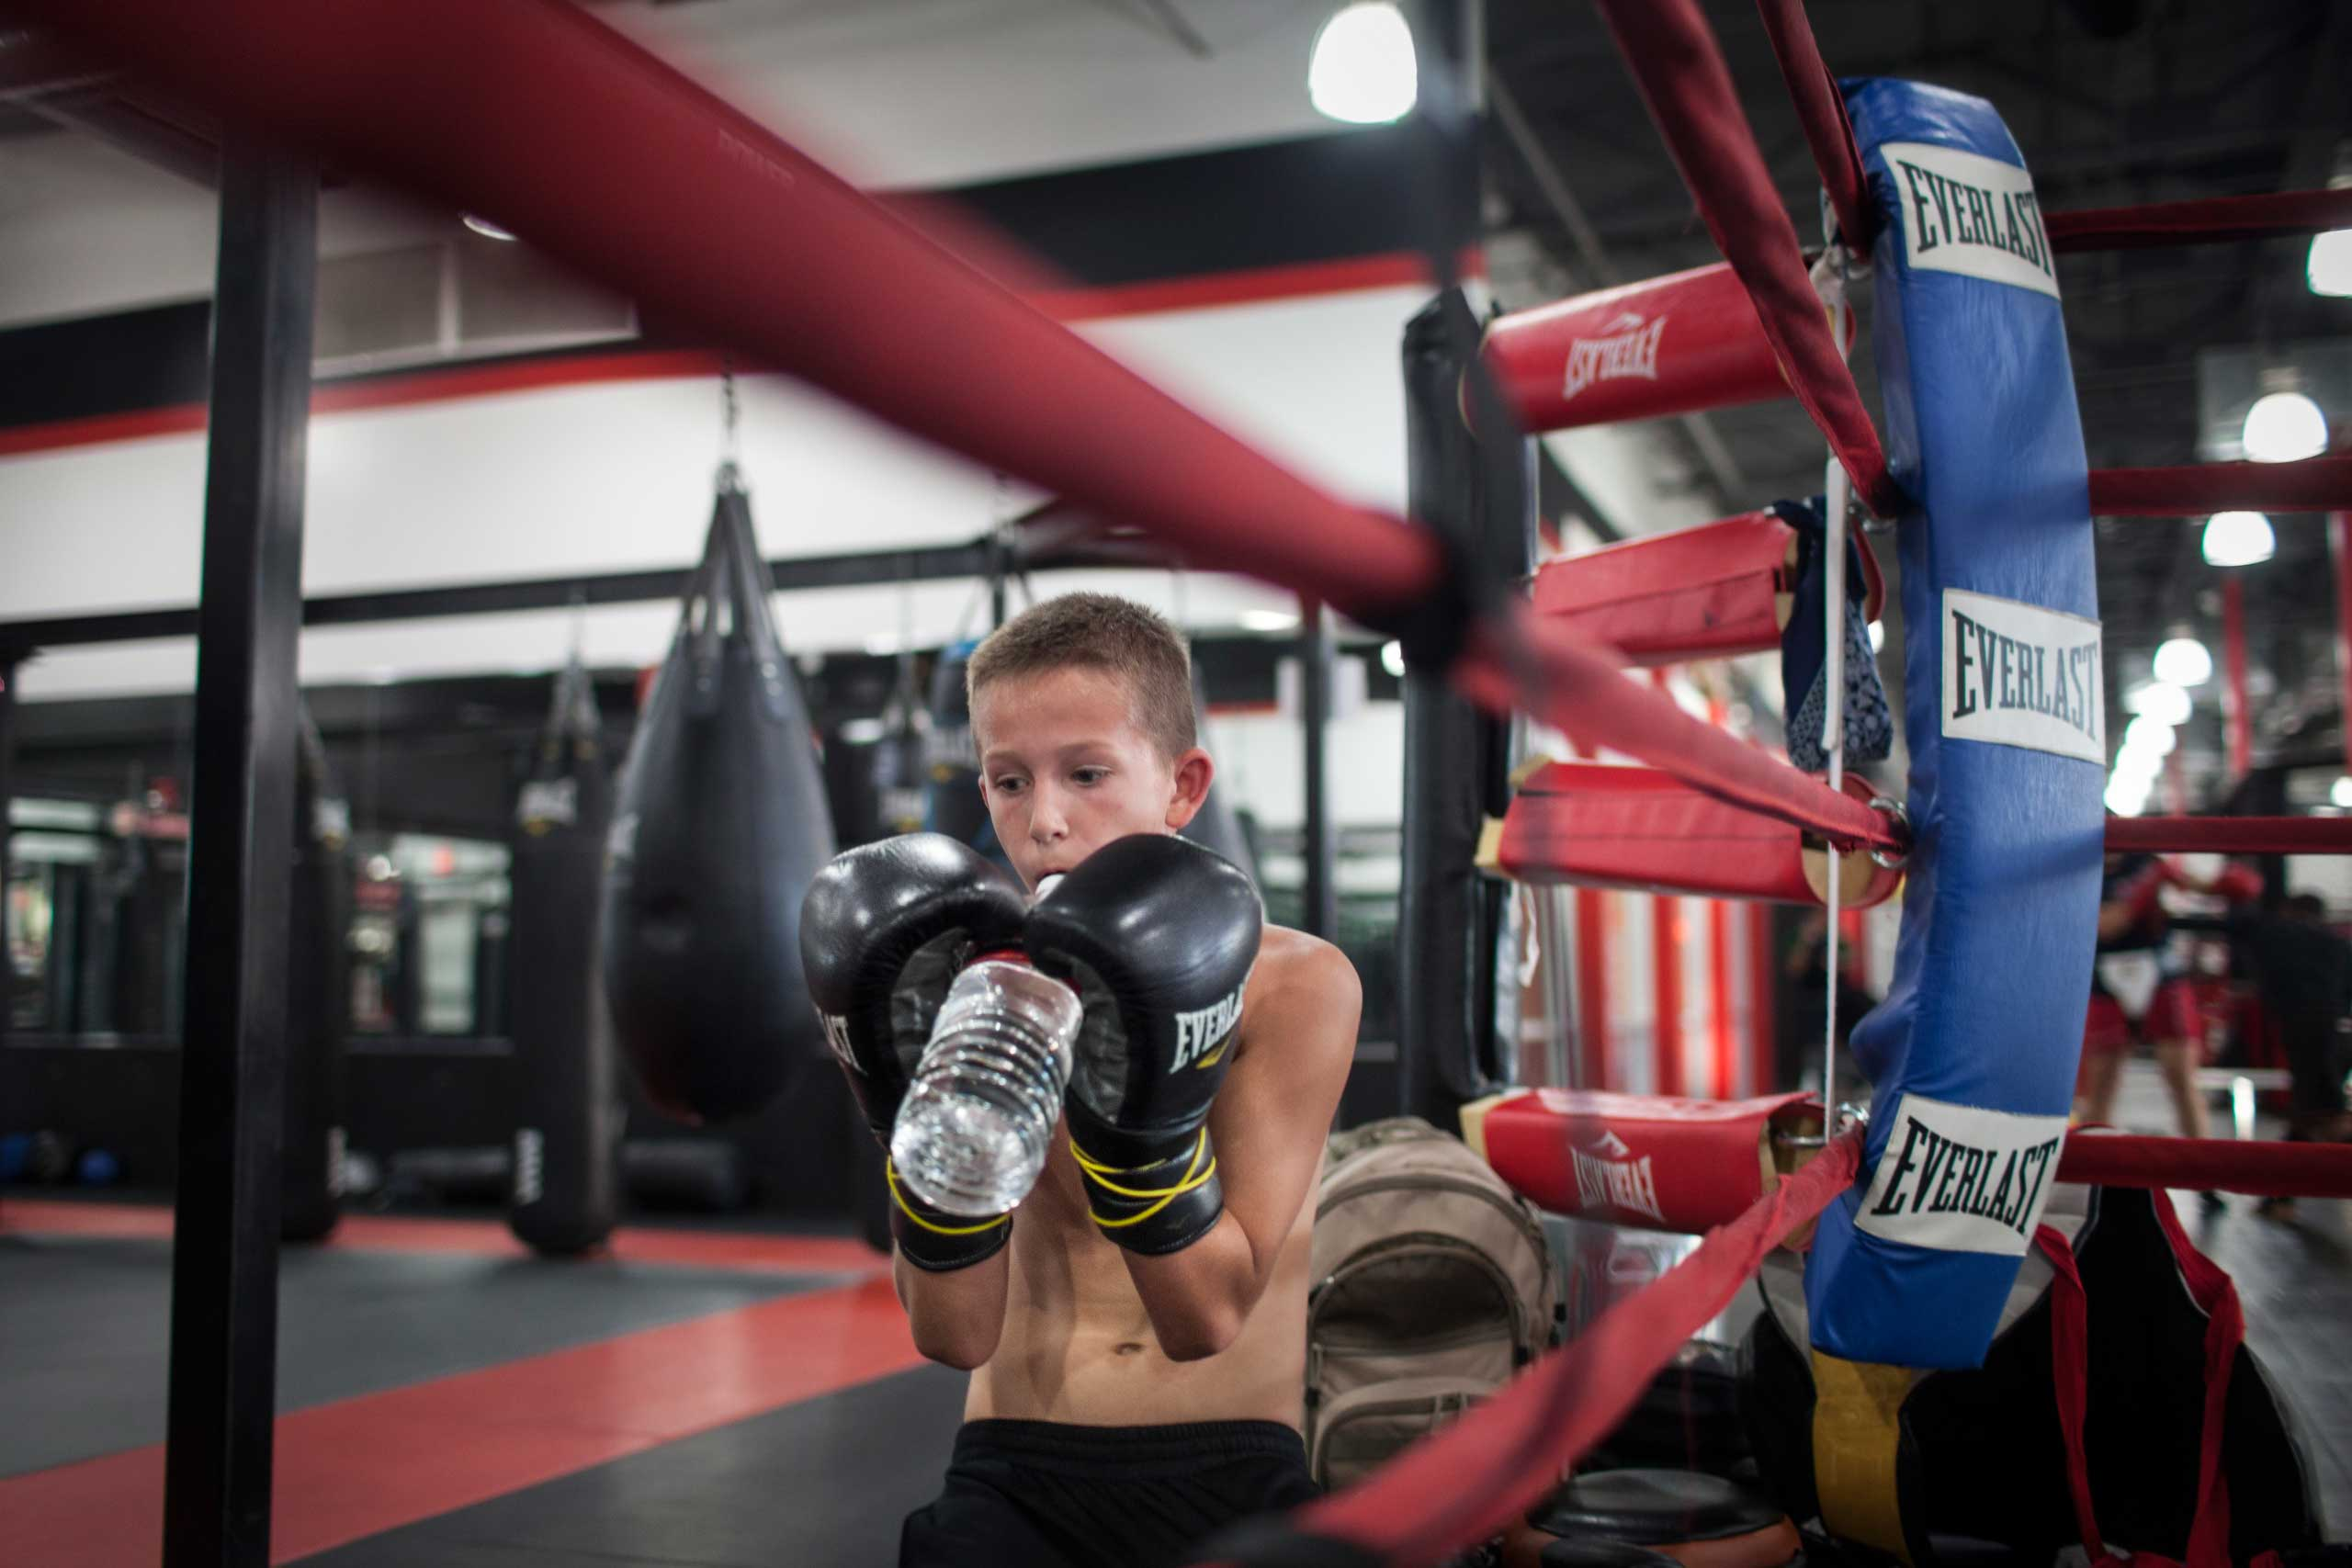 William Reid, 10, at a private boxing class in Power mixed martial arts gym, Mesa, Arizona, Nov. 2013.